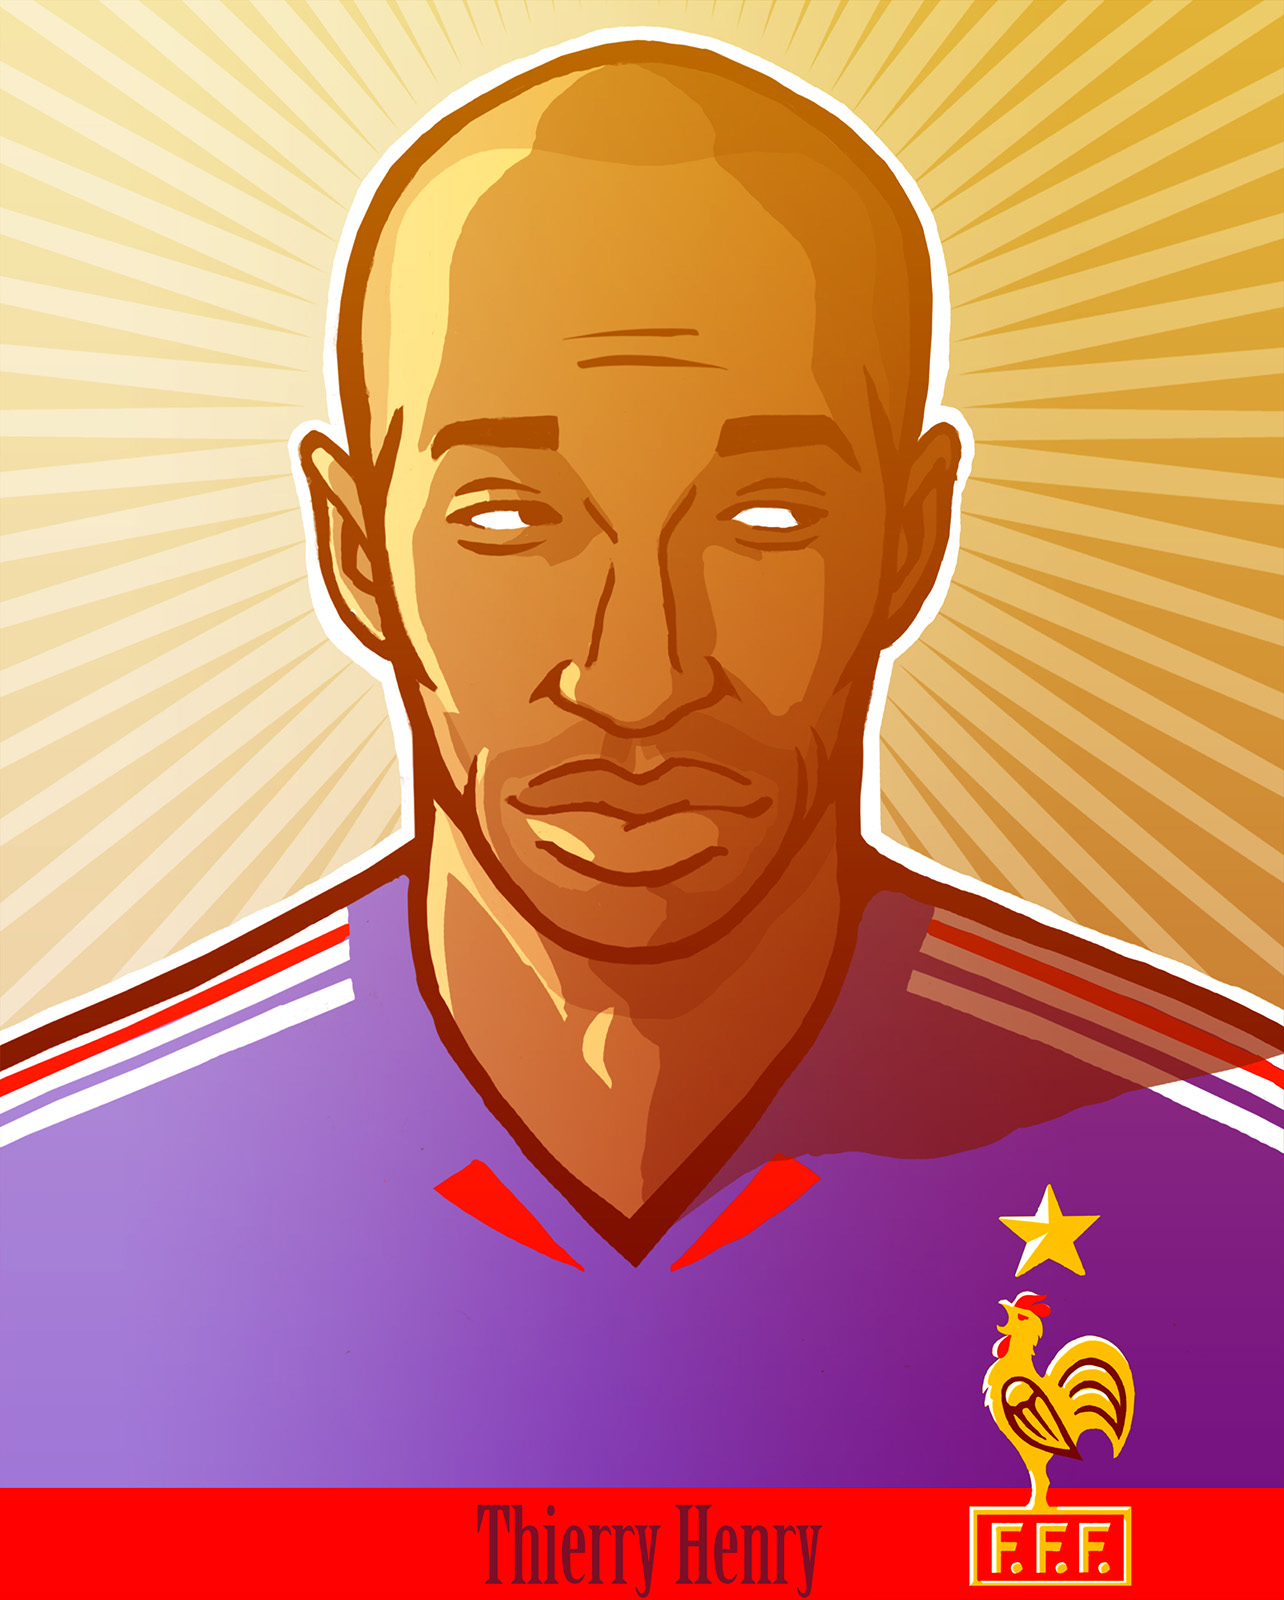 Thierry_Henry.jpg